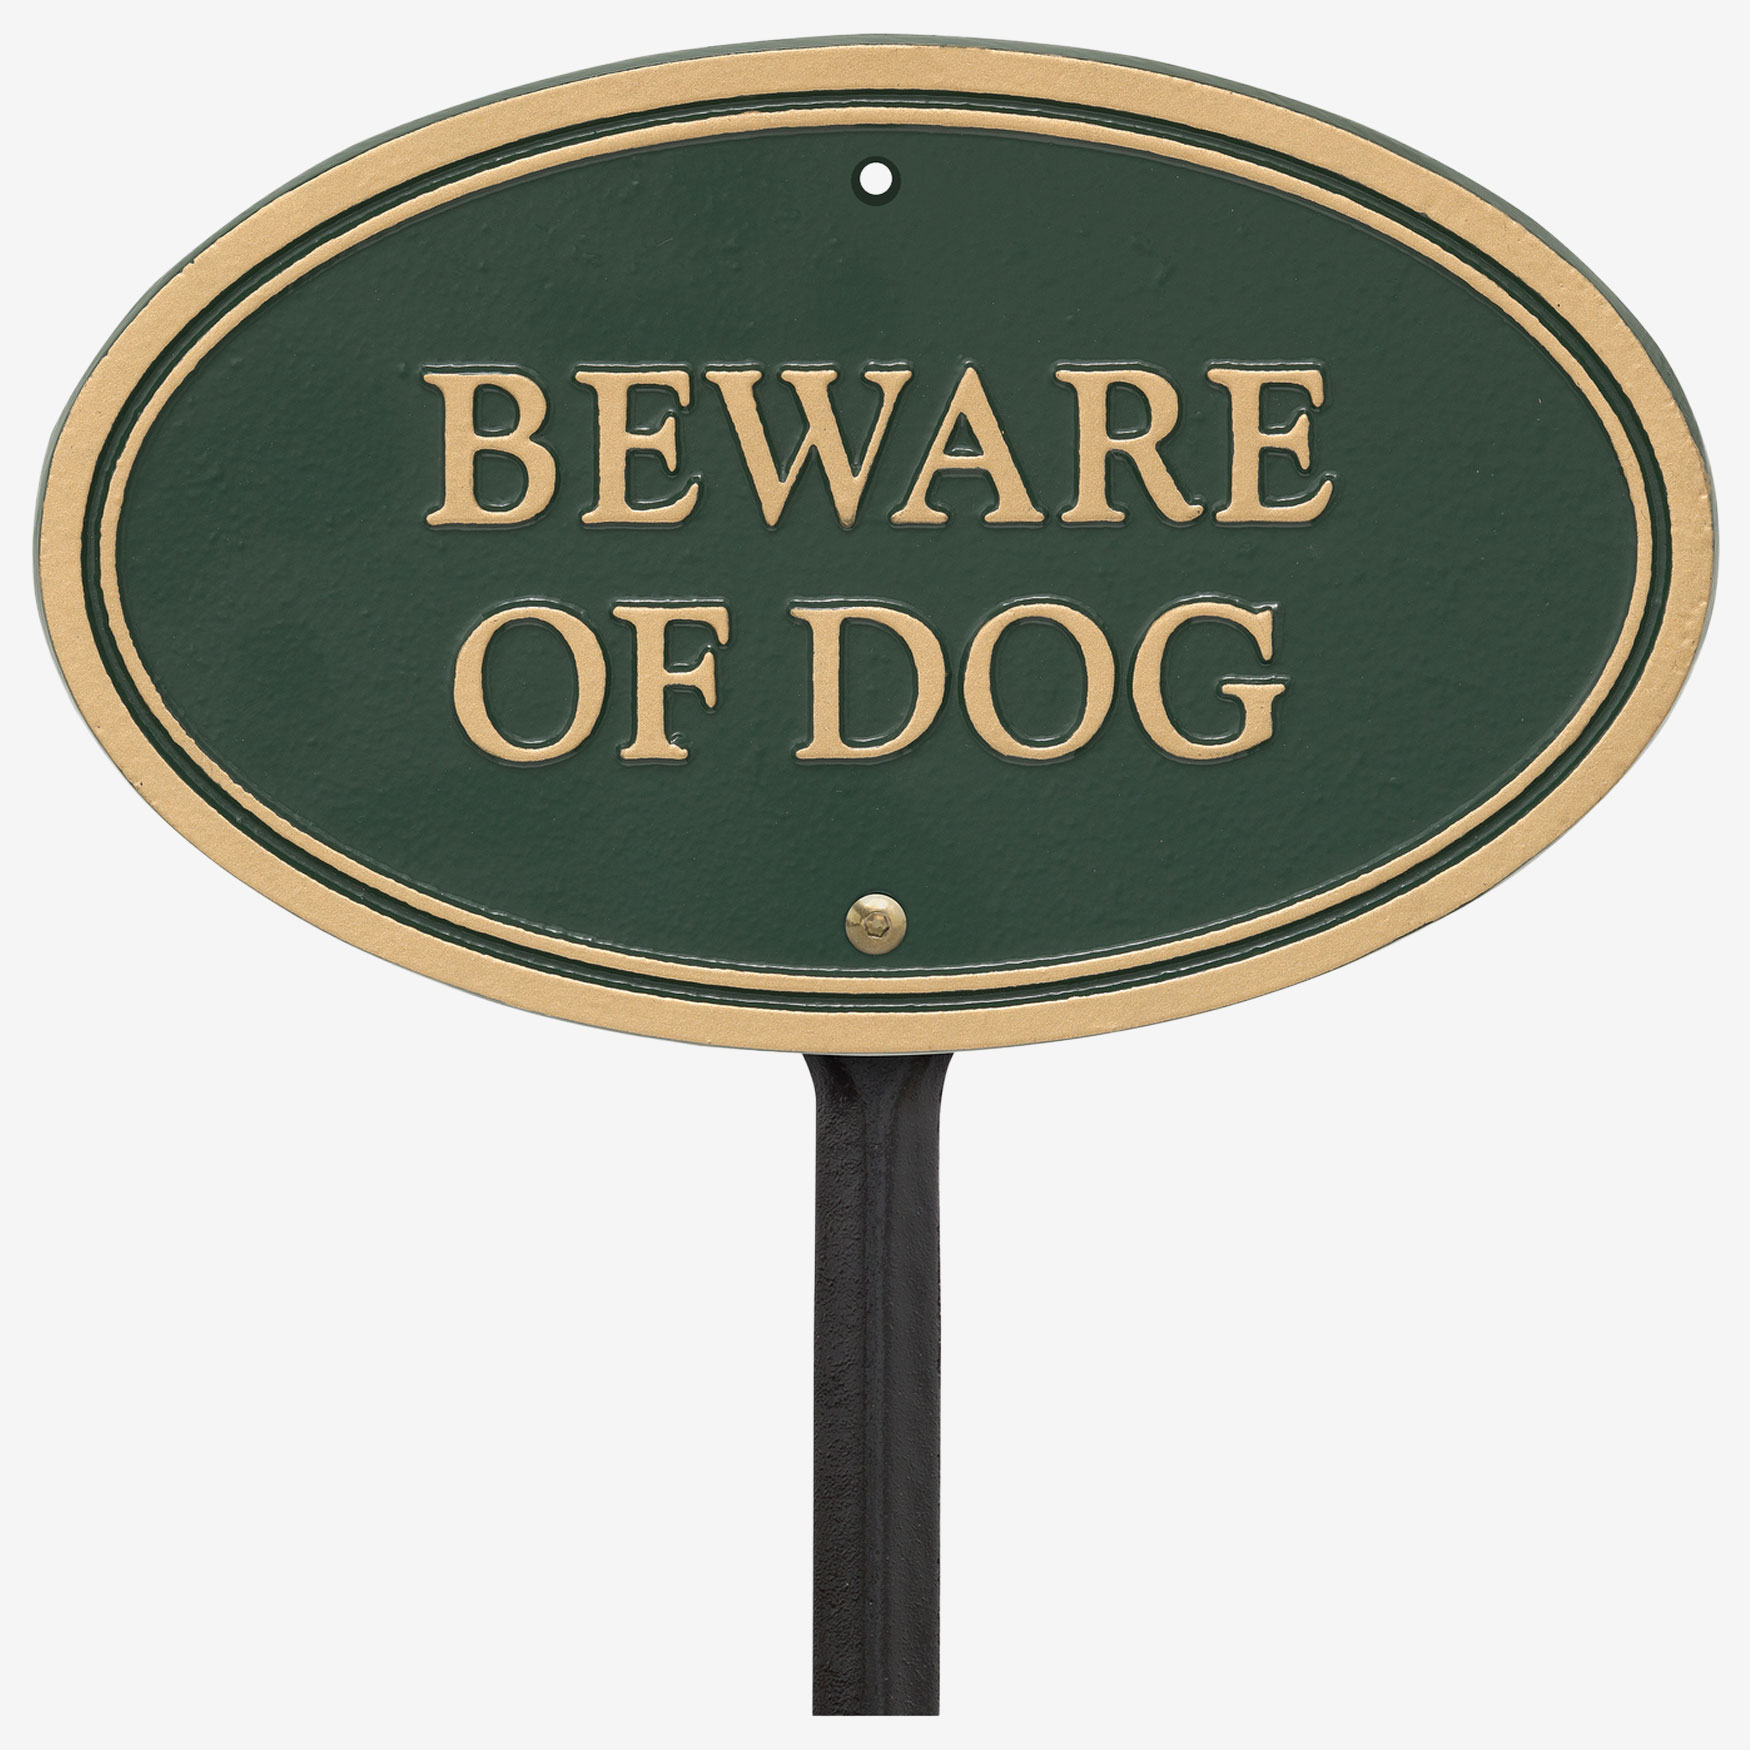 Beware of Dog Oval Wall/Lawn Statement Plaque,